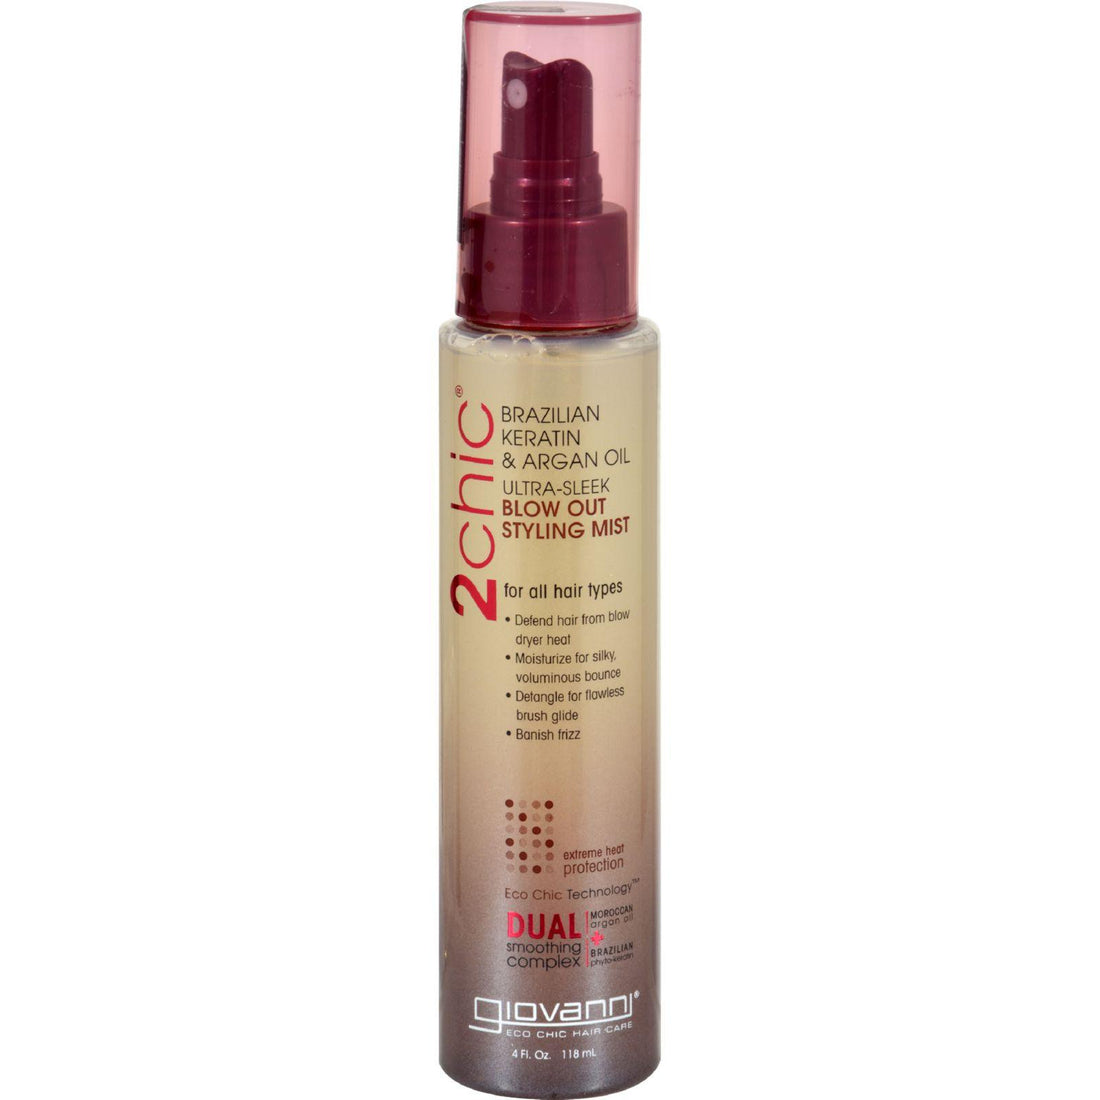 Mother Mantis: Giovanni 2chic Blow Out Styling Mist With Brazilian Keratin And Argan Oil - 4 Fl Oz Giovanni Hair Care Products